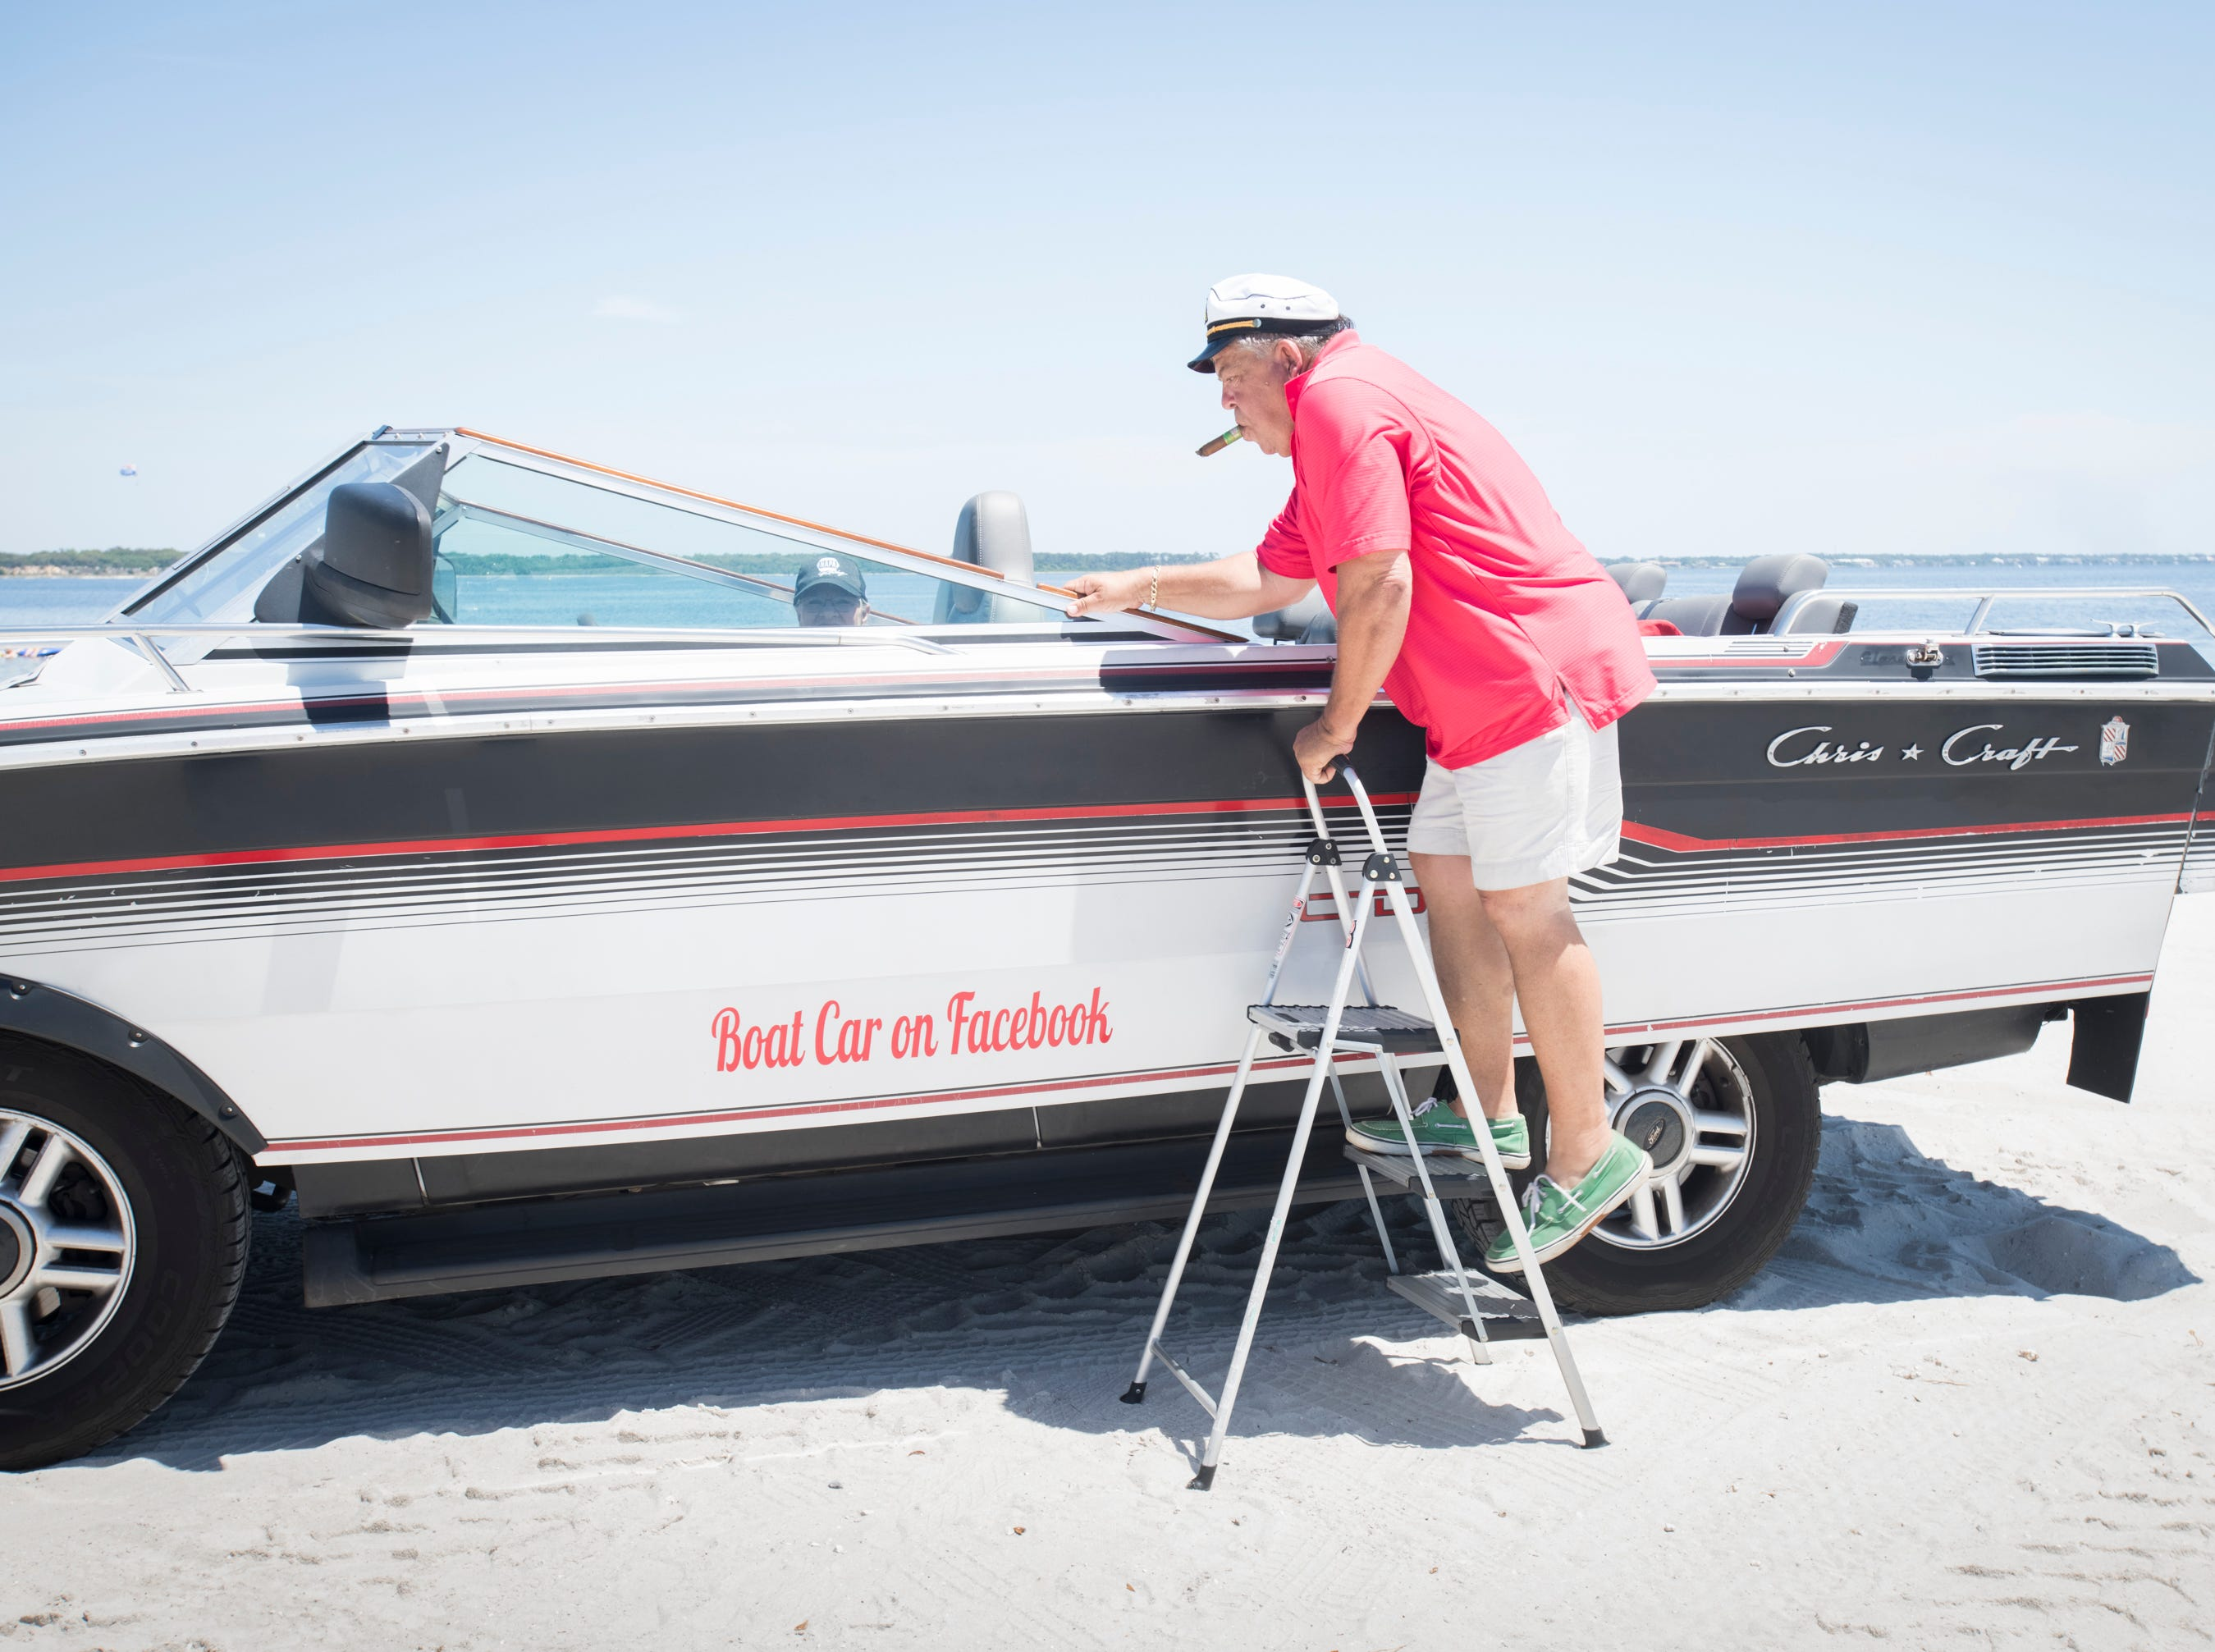 Gerry Moore climbs aboard his Boat Car at Quietwater Beach in Pensacola on Tuesday, May 7, 2019.  The vehicle is a 1986 Chris Craft 210 Scorpion boat - 2003 Ford Expedition SUV hybrid created by Gerry.